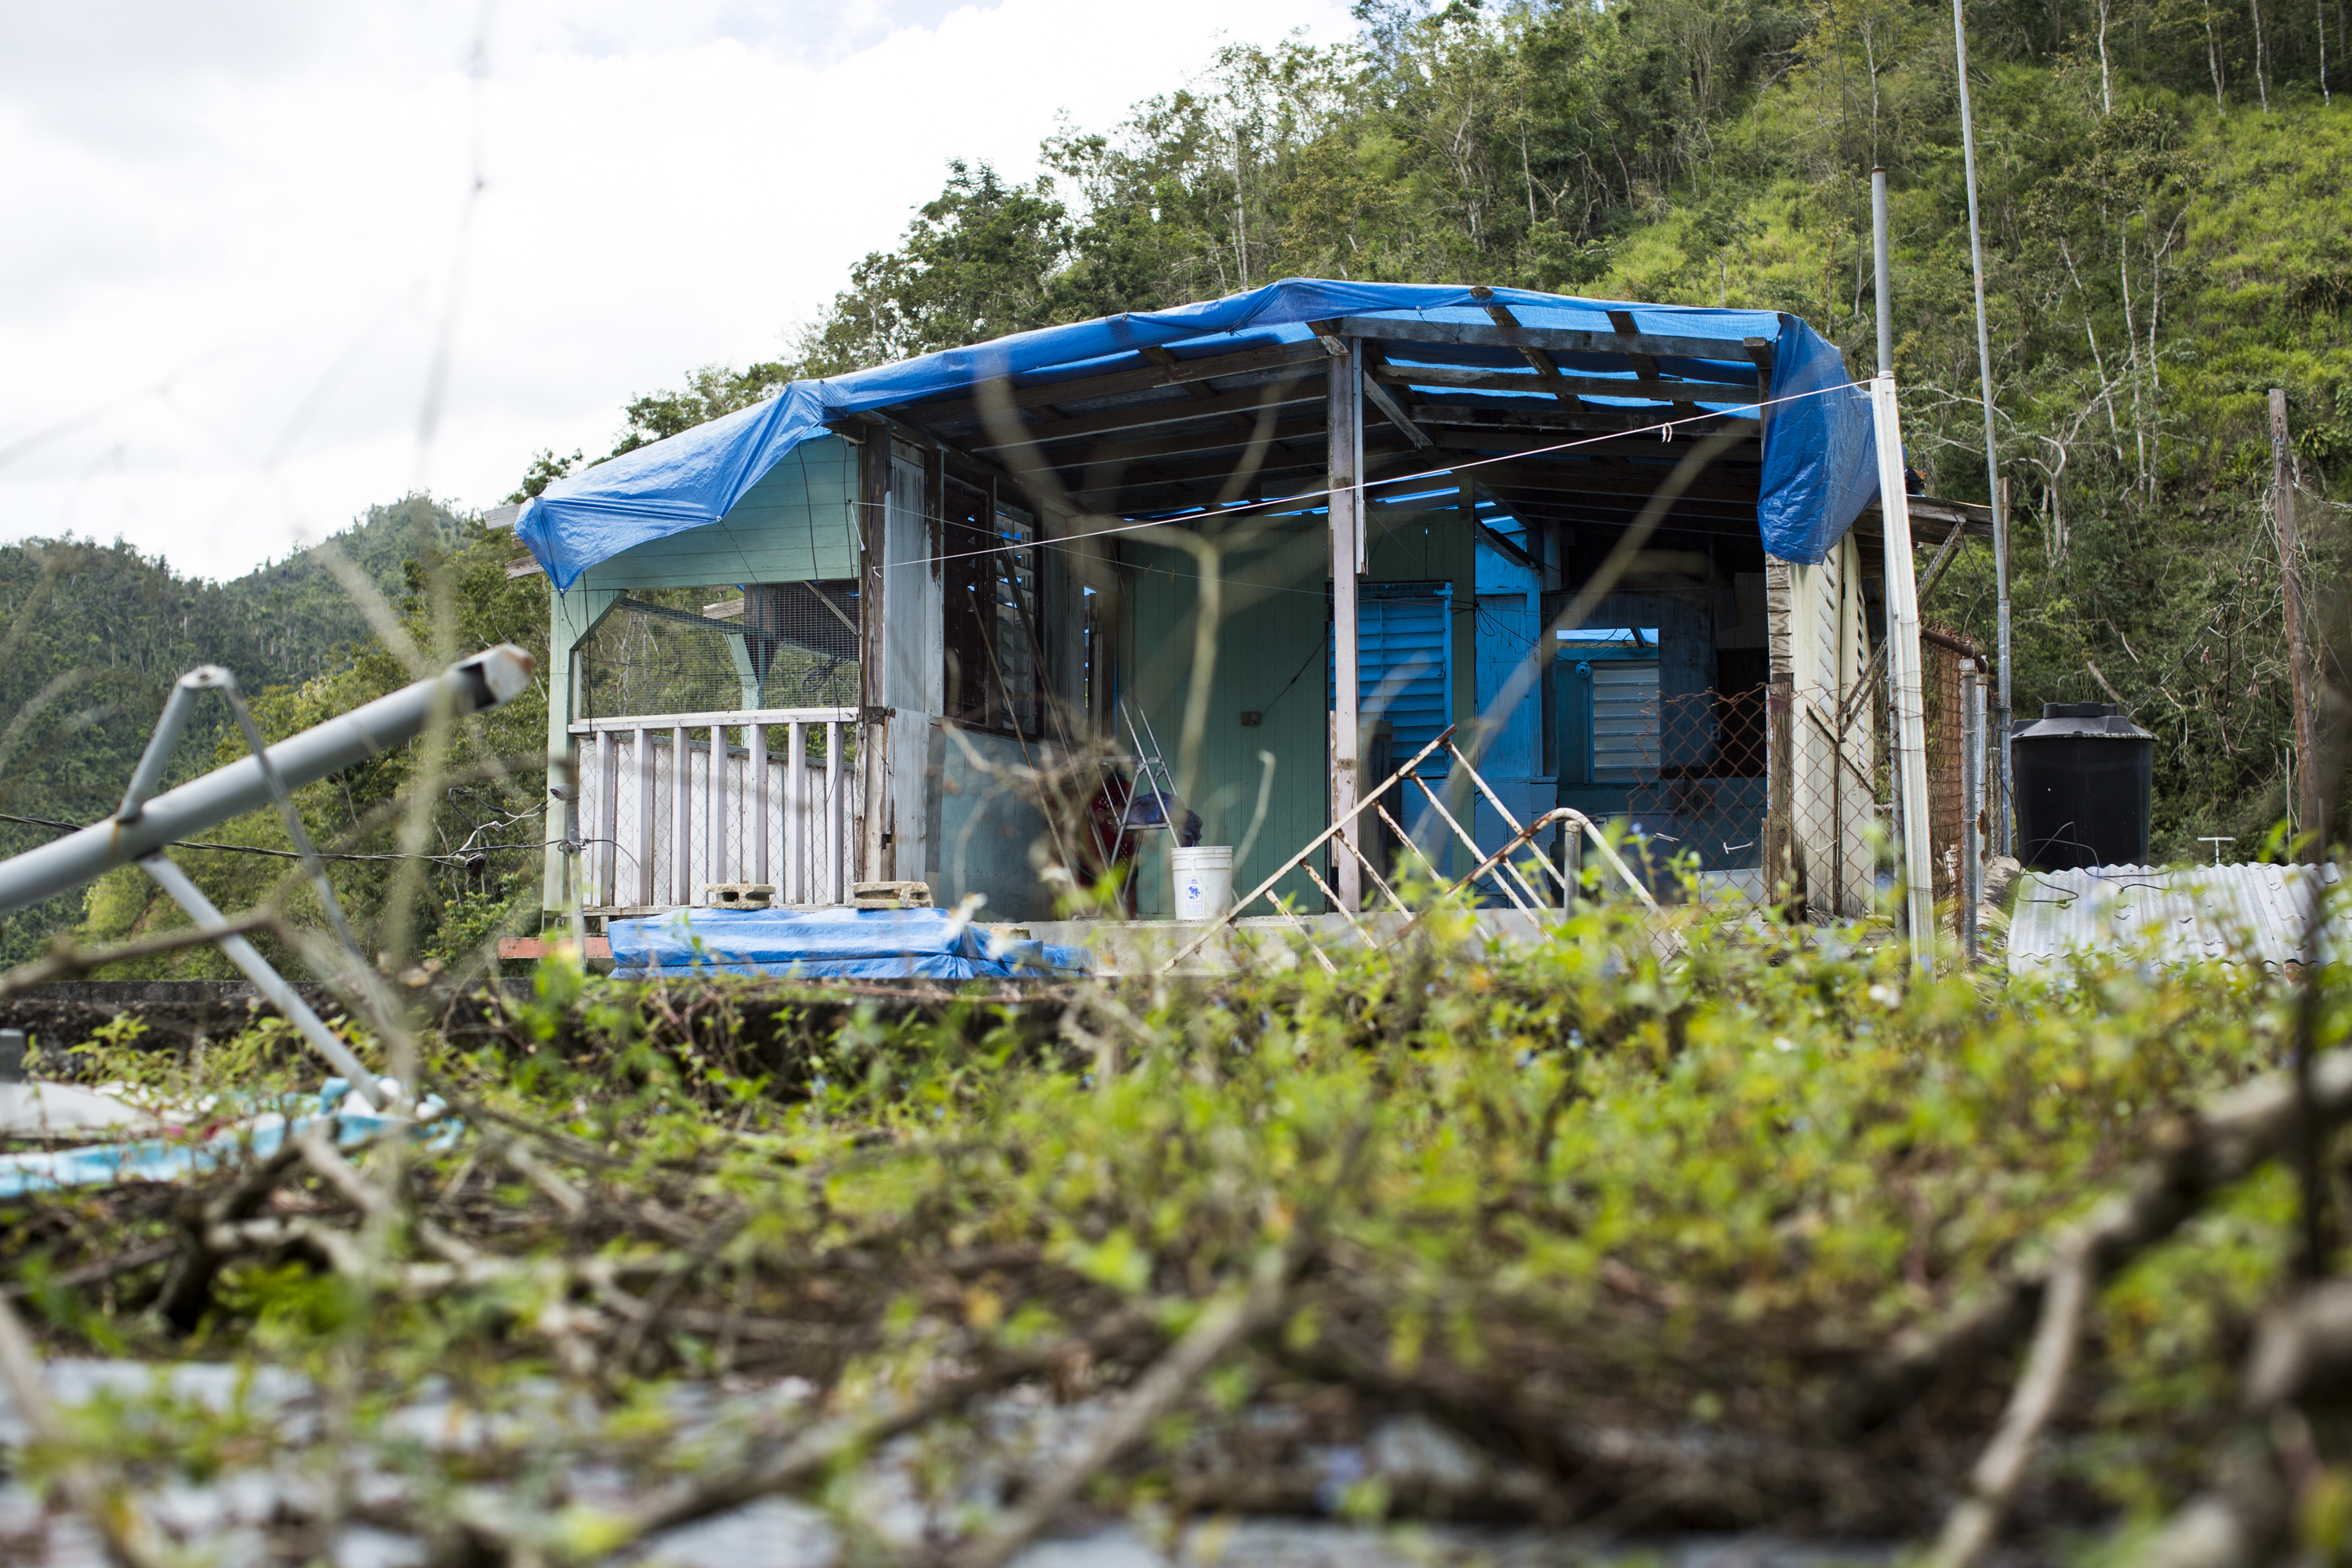 6 months after Hurricane Maria, Puerto Rico has a suicide crisis and a housing shortage